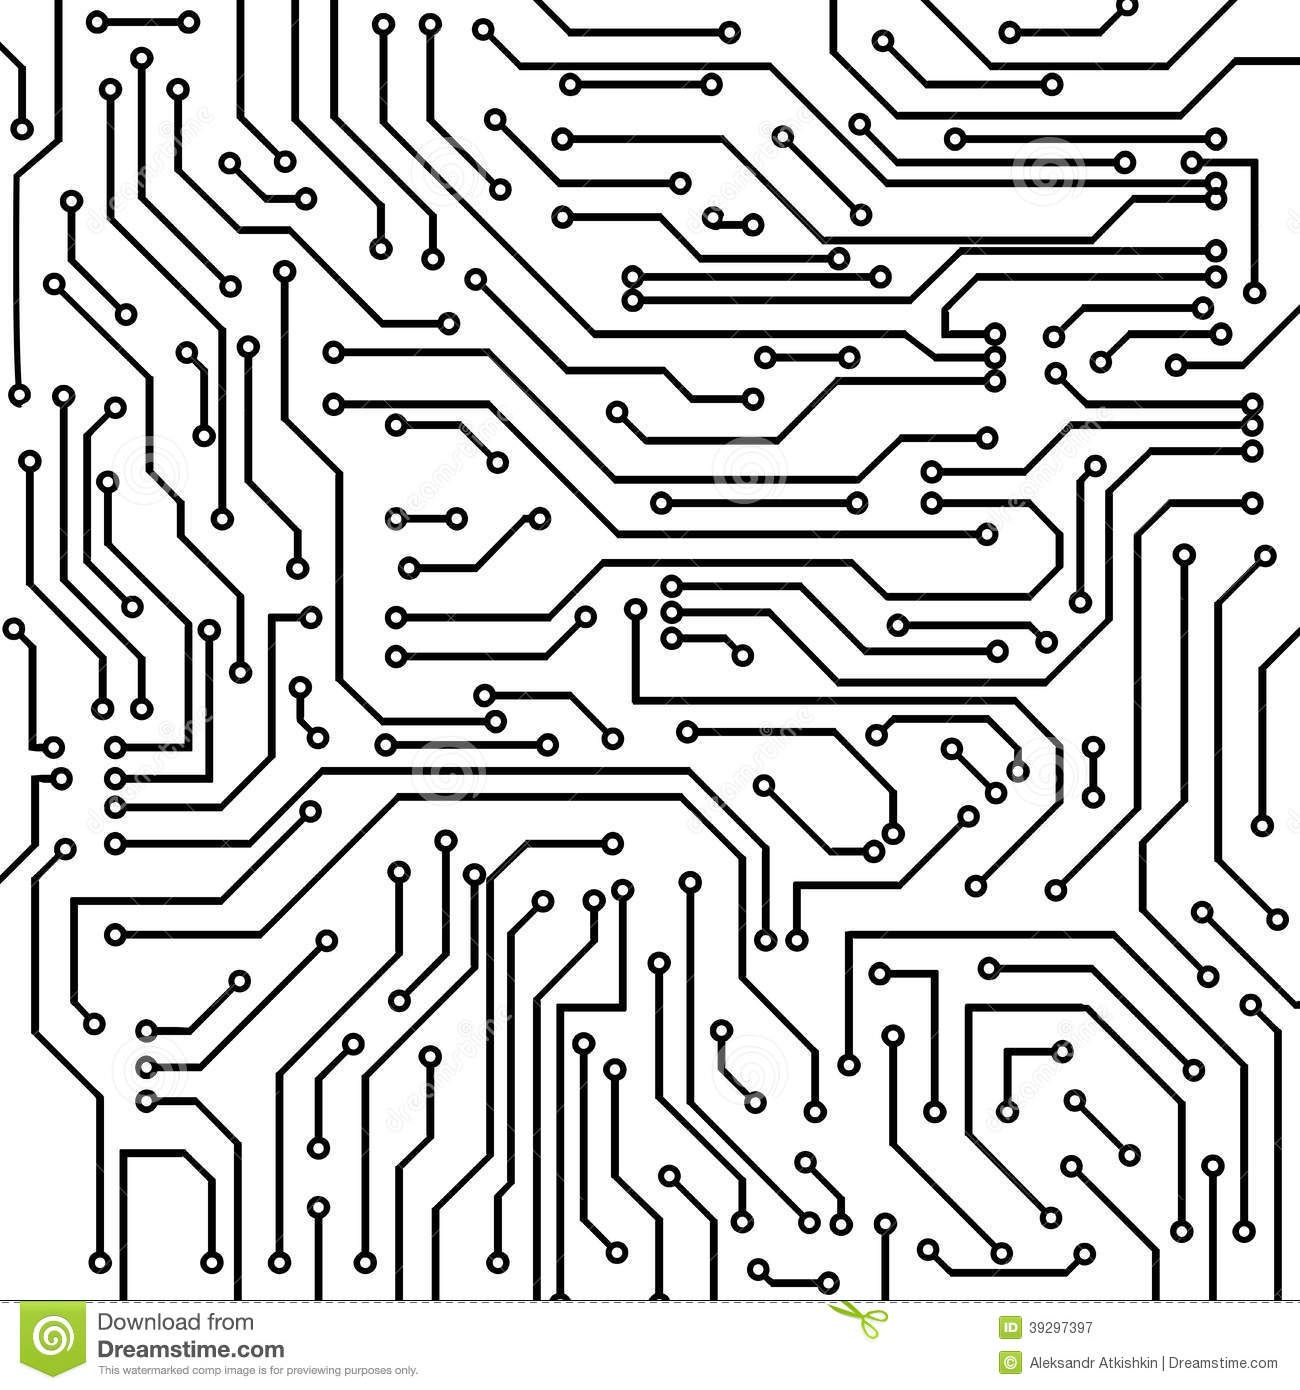 medium resolution of computer chip graphic google search circuit board design computer chip systems engineering